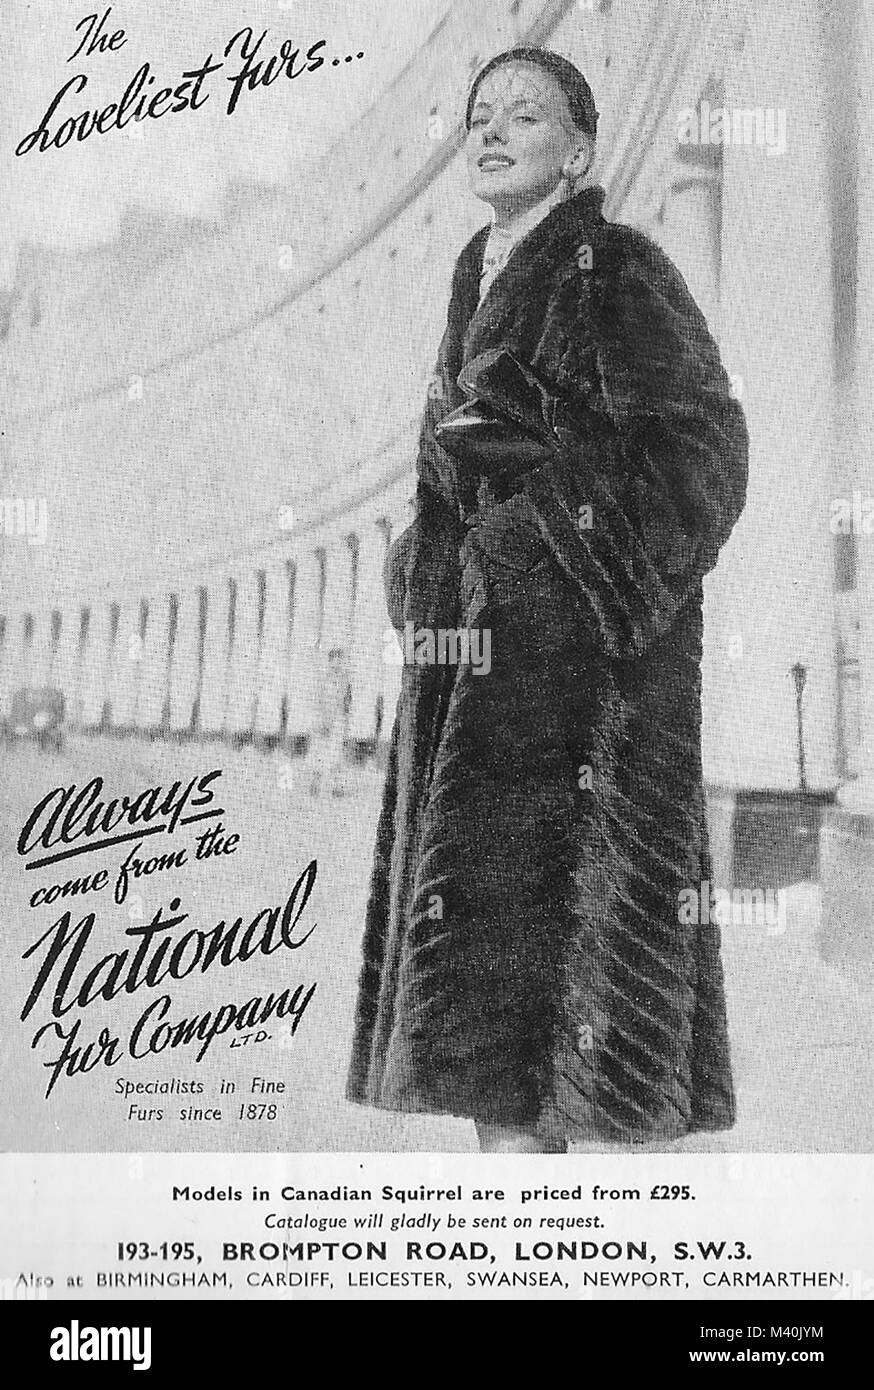 Women fur cots advert National Fur Company, , advertising in Country Life magazine UK 1951 - Stock Image